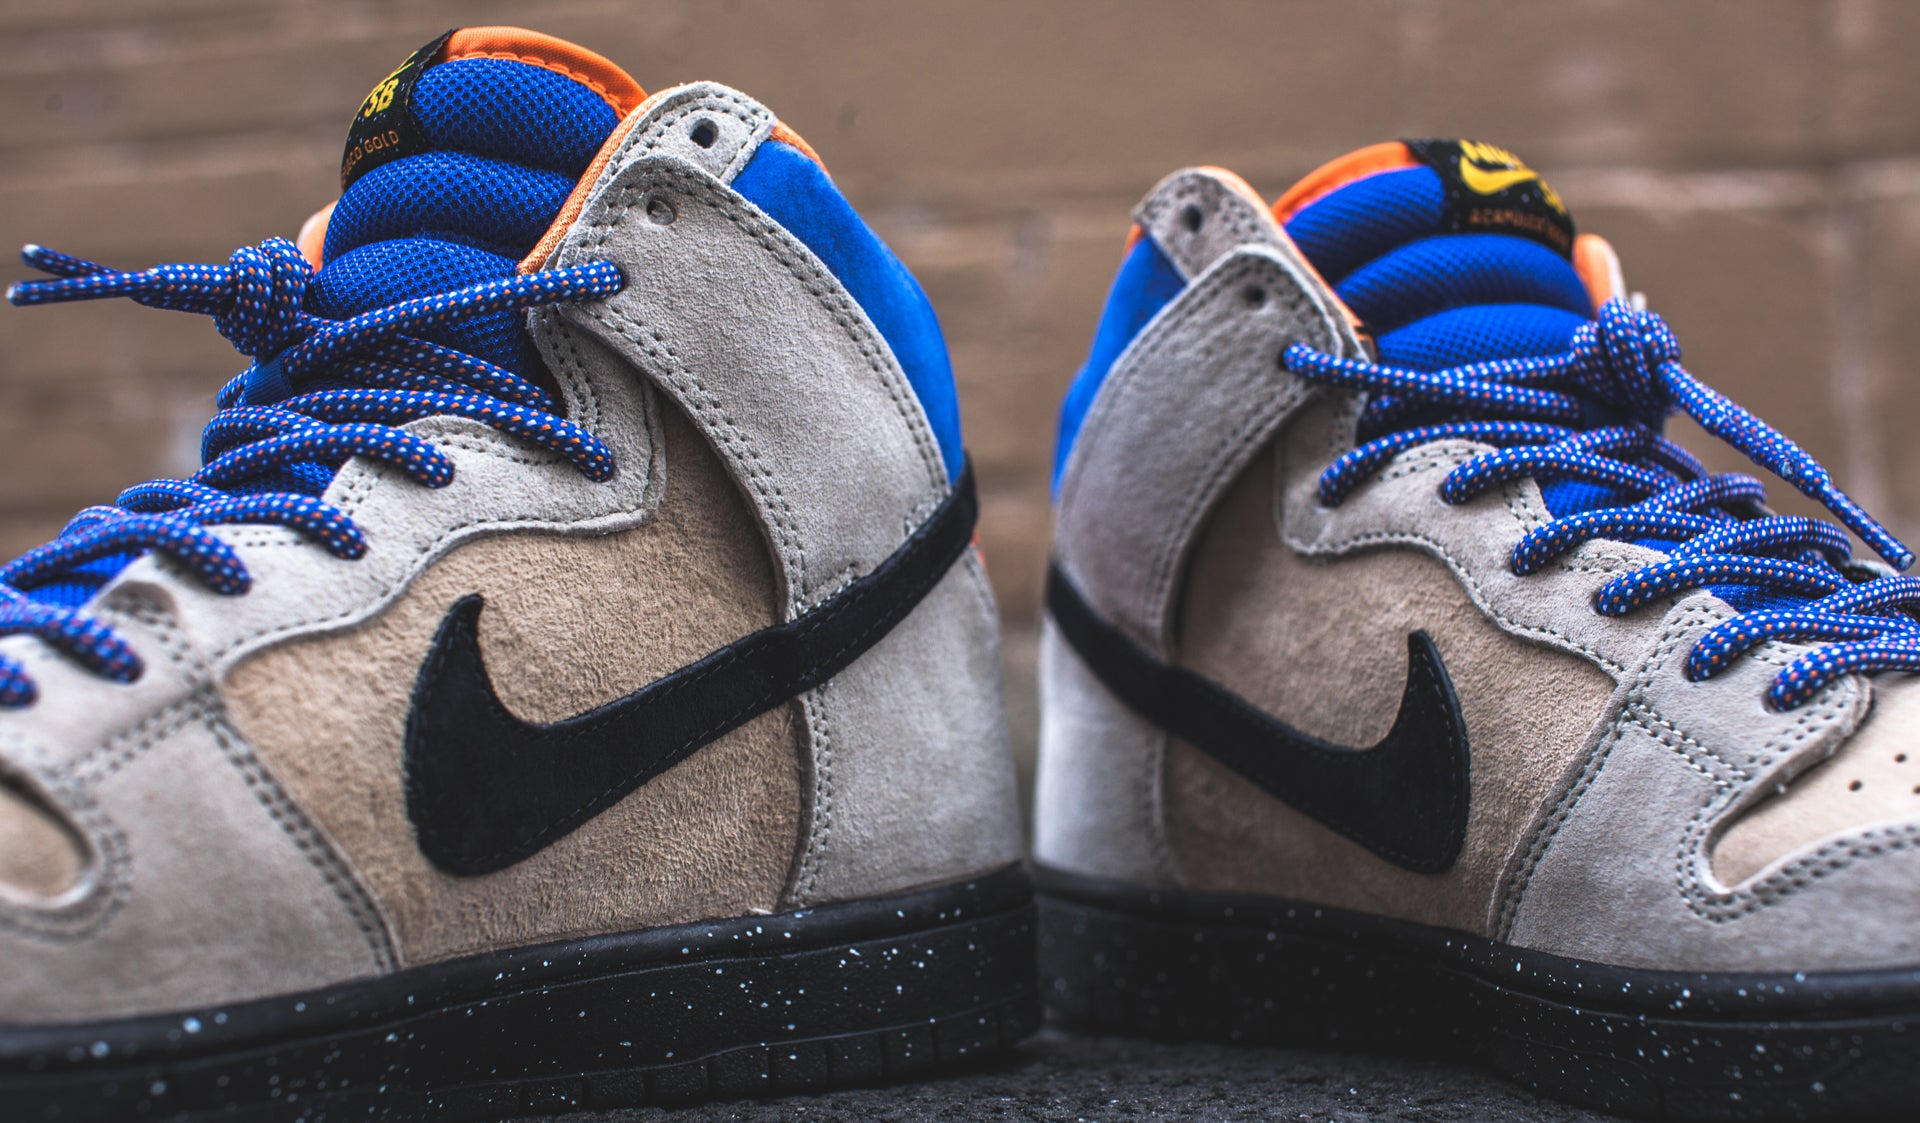 super popular 7f4e4 d2355 Acapulco Gold x Nike SB Dunk High Premium